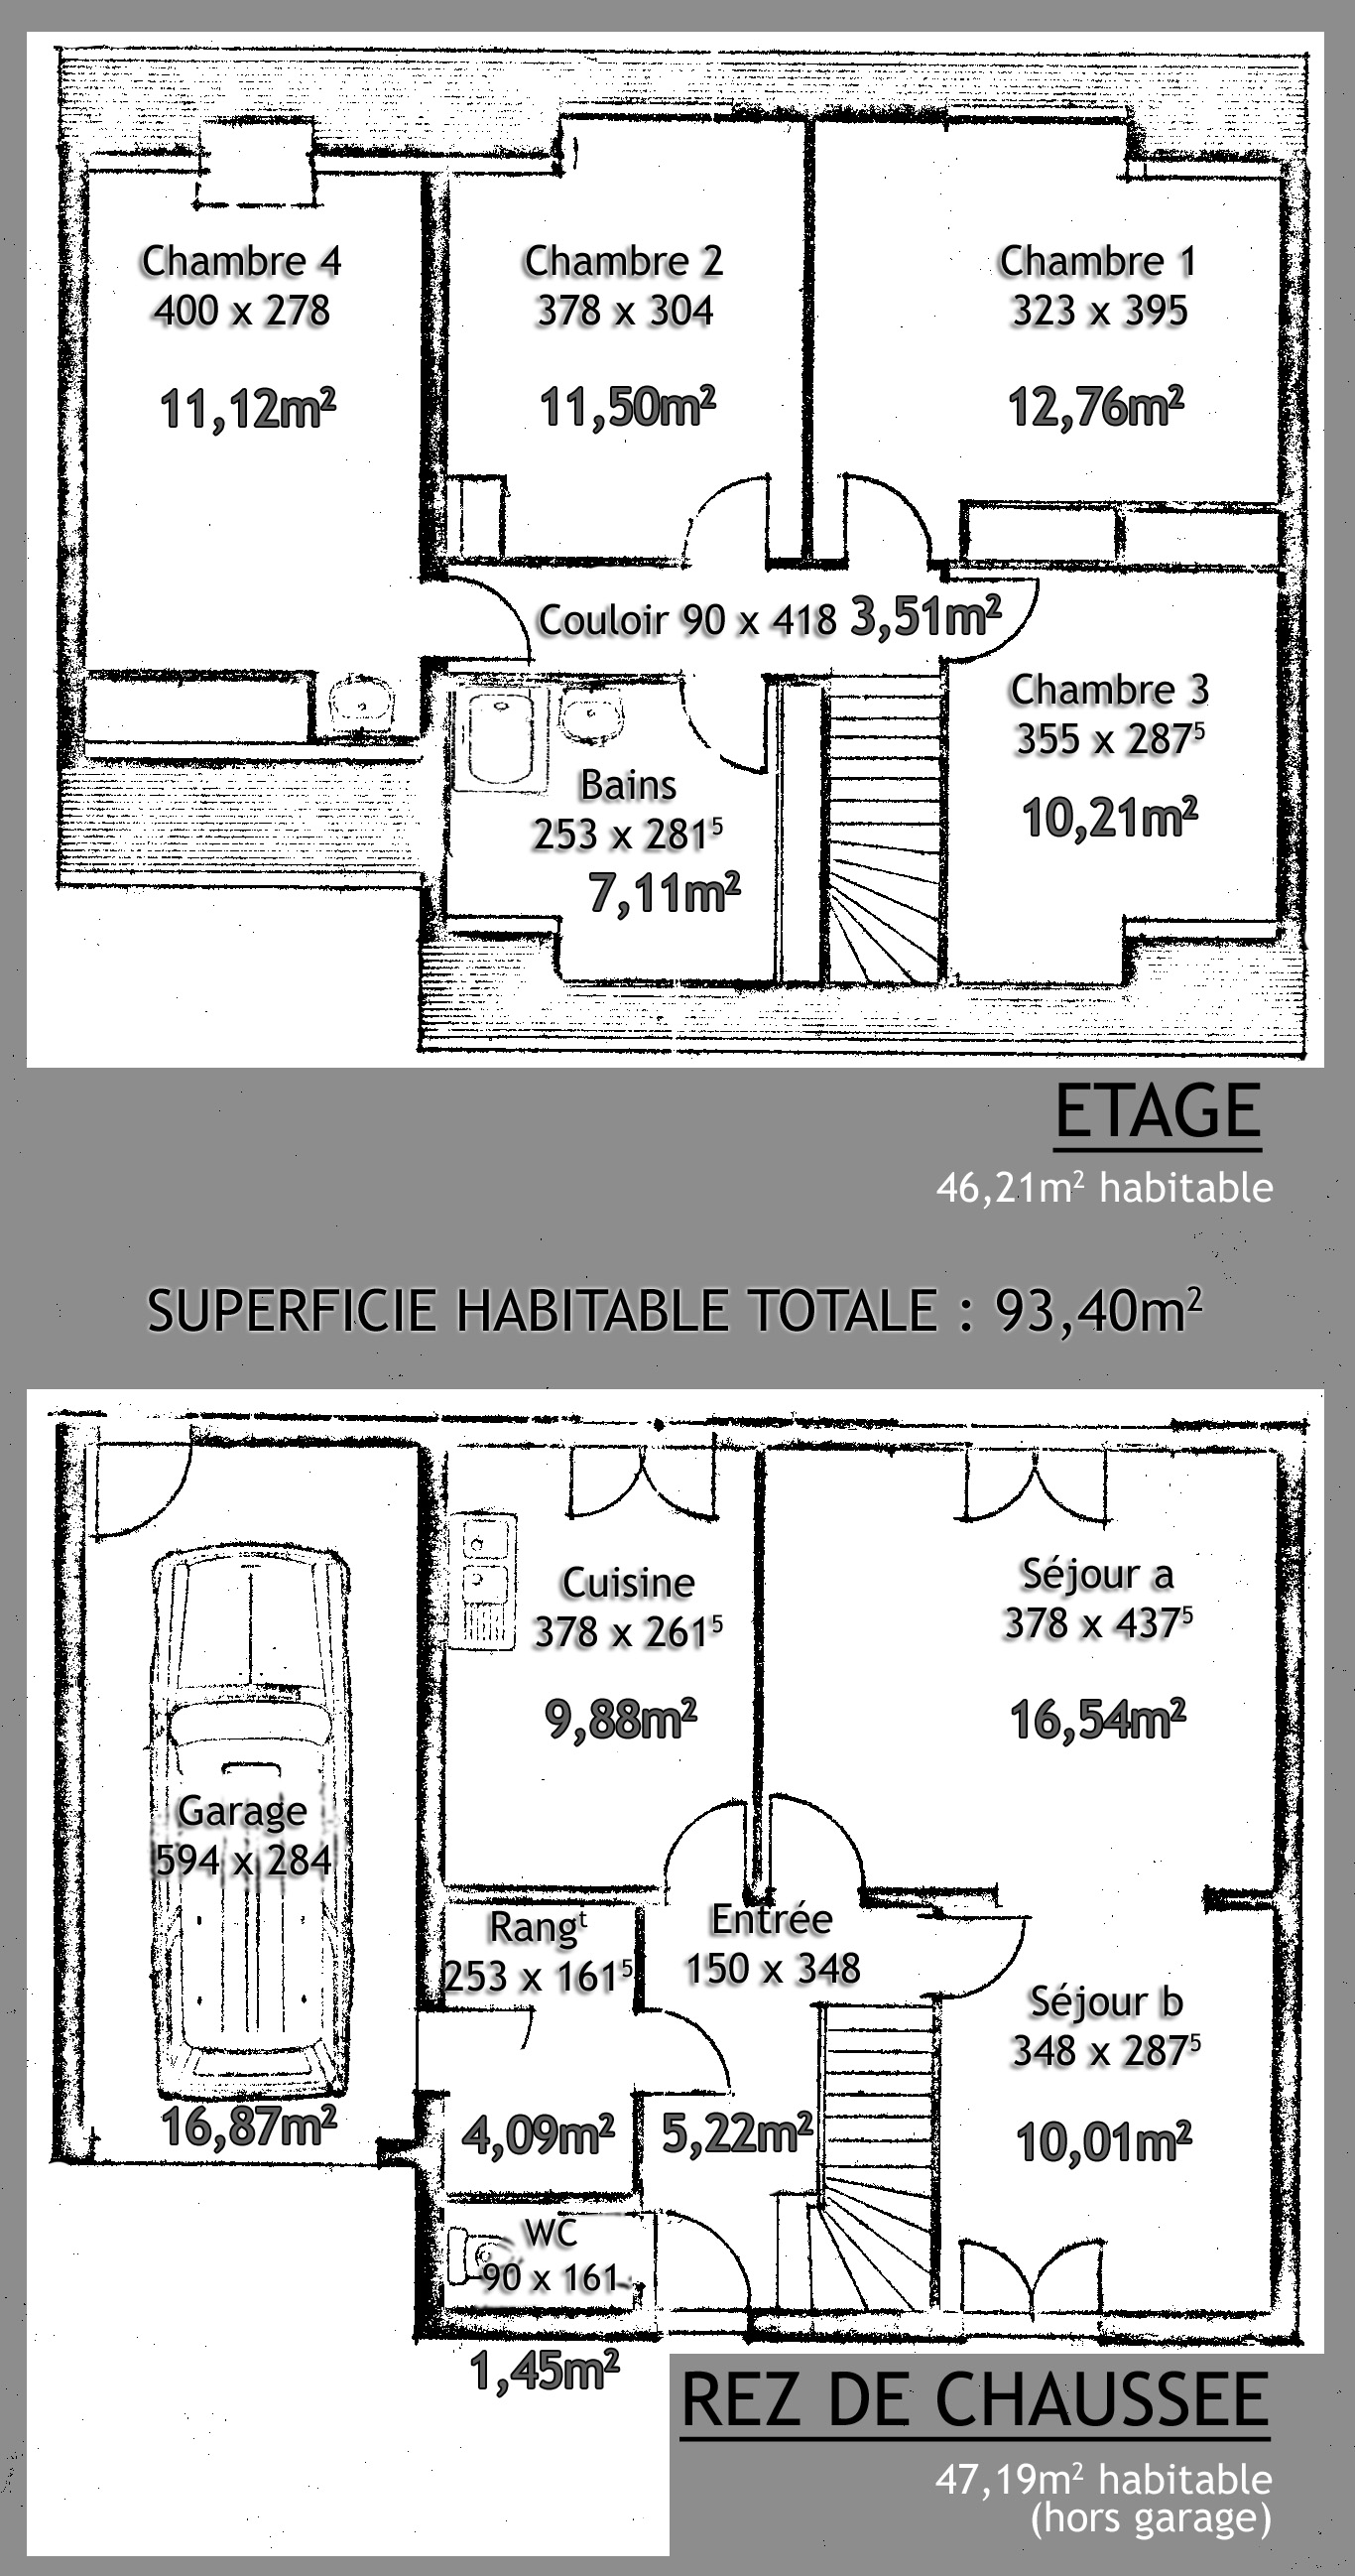 Plan de maison usa for Concepteur de plan de maison